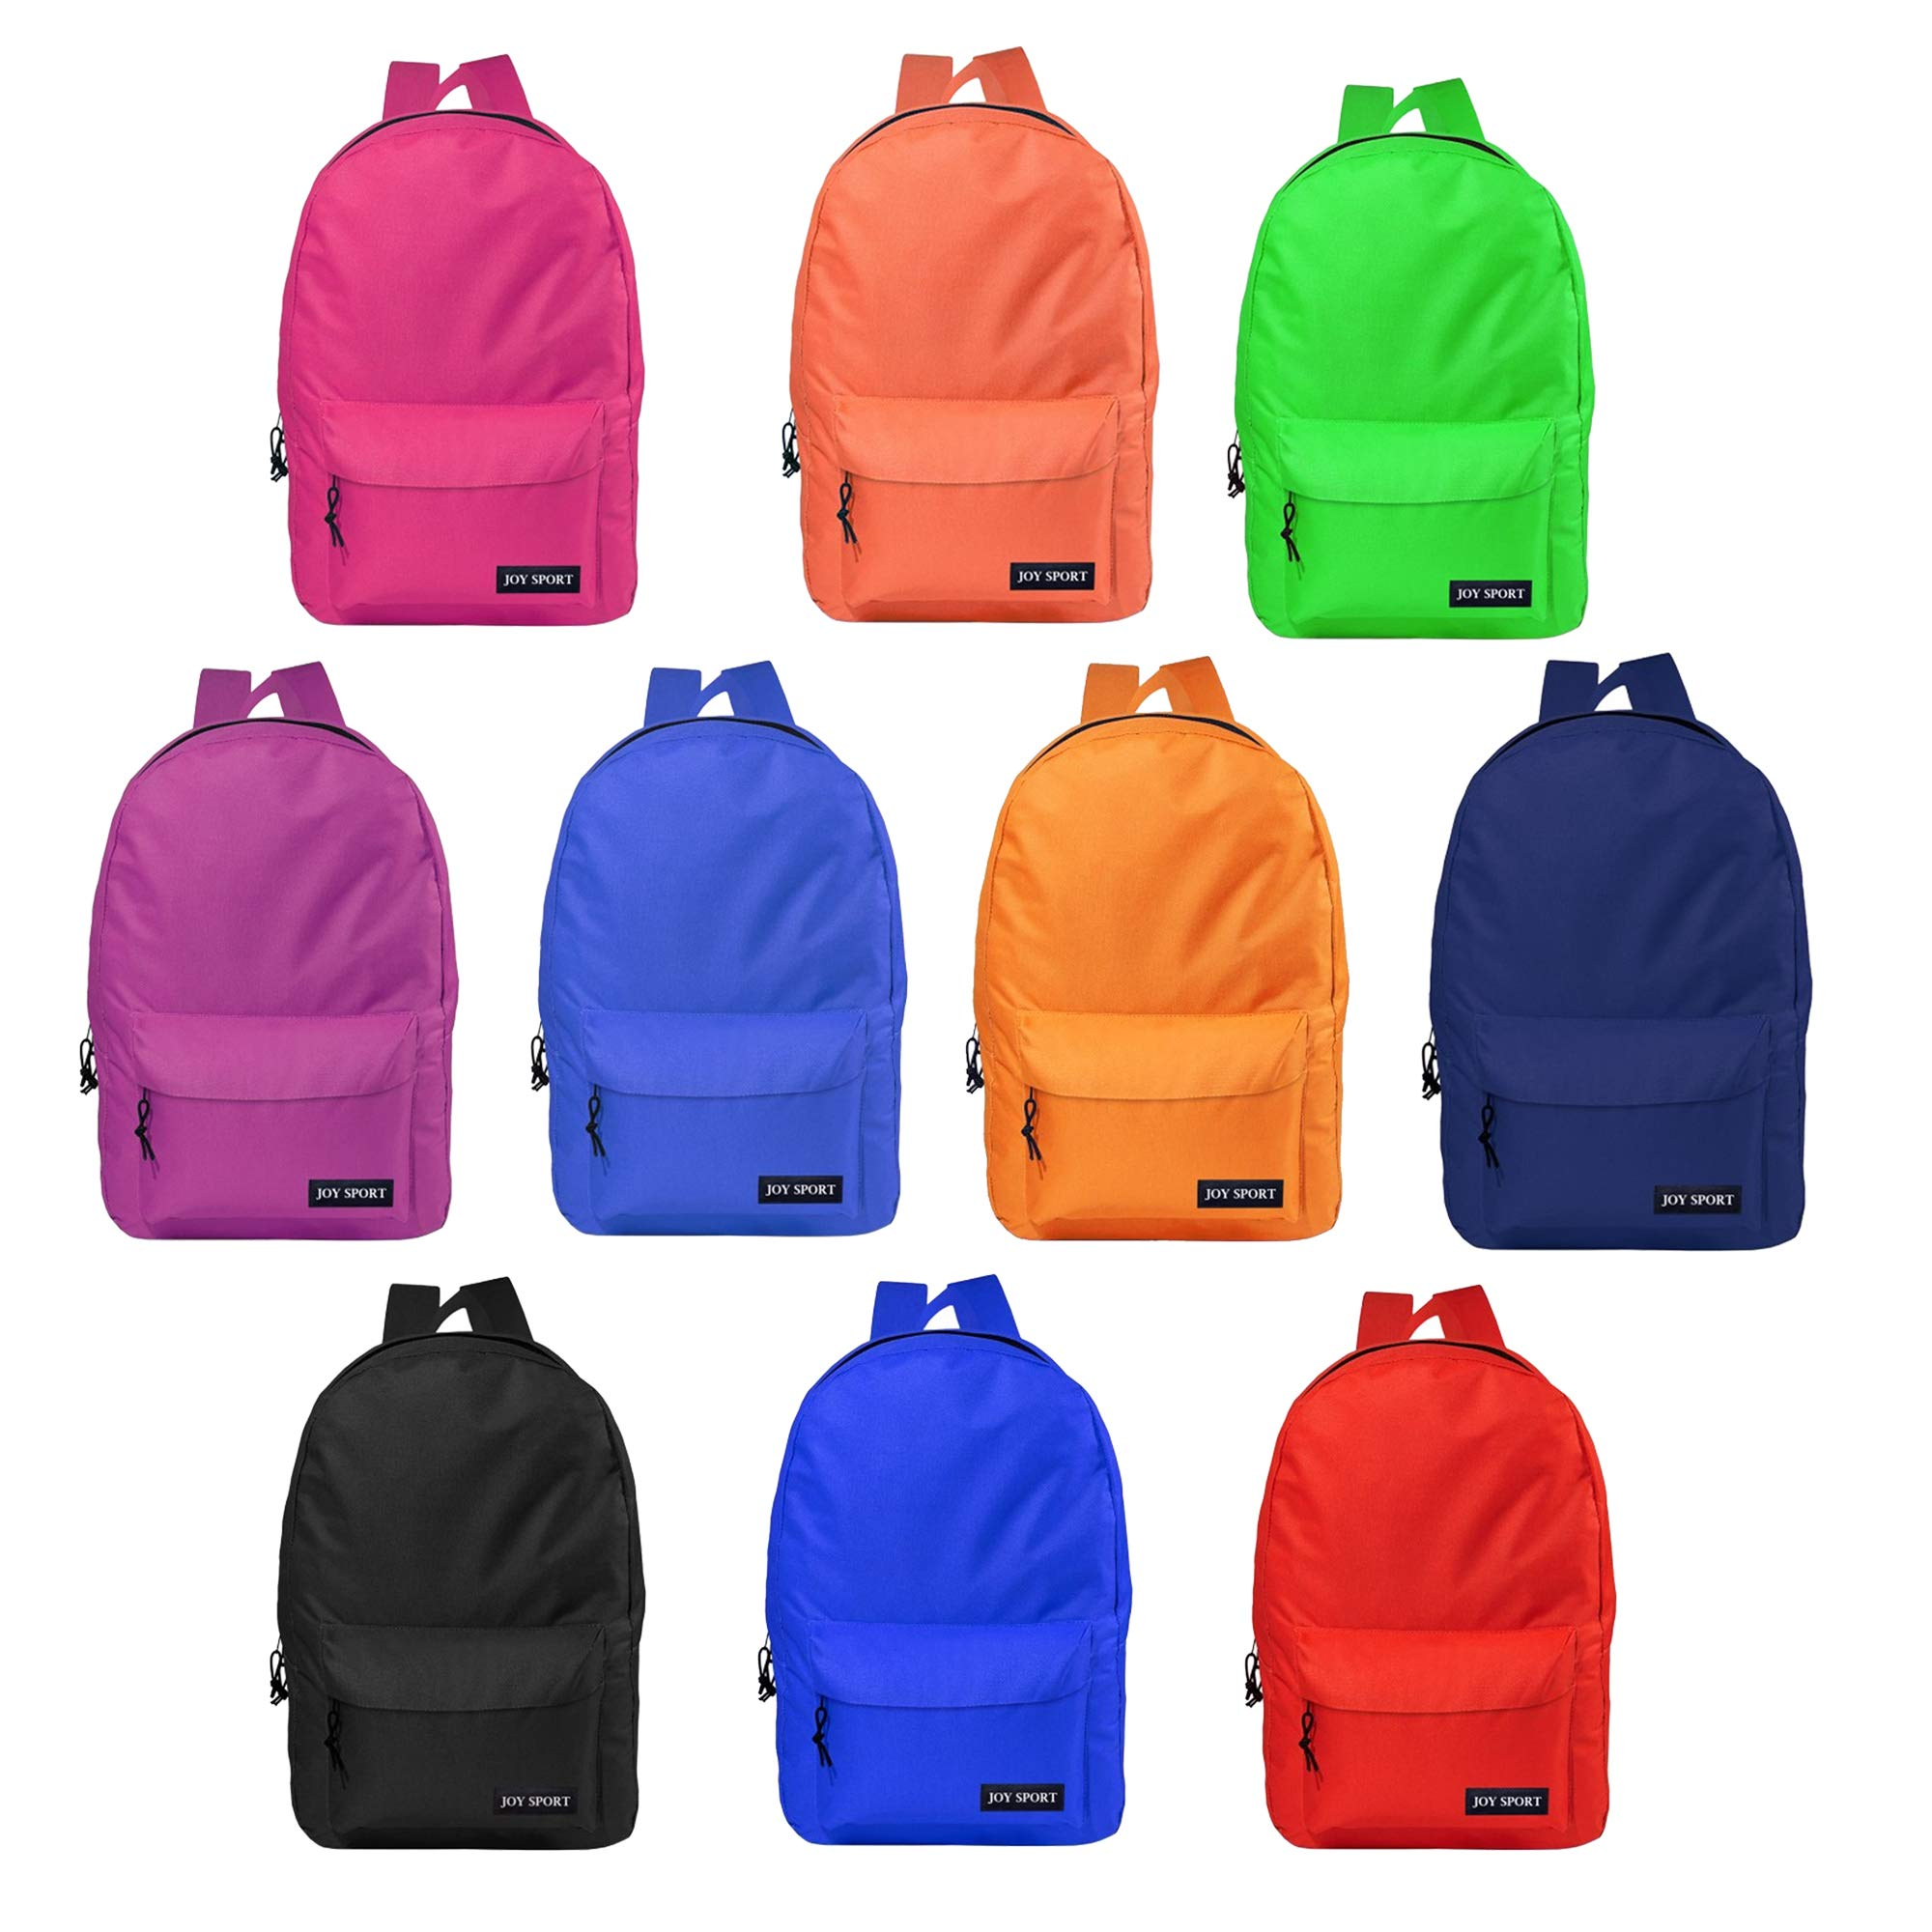 17 Inch Wholesale Basic Backpack in 10 Assorted Colors - Bulk Case of 24 Bookbags